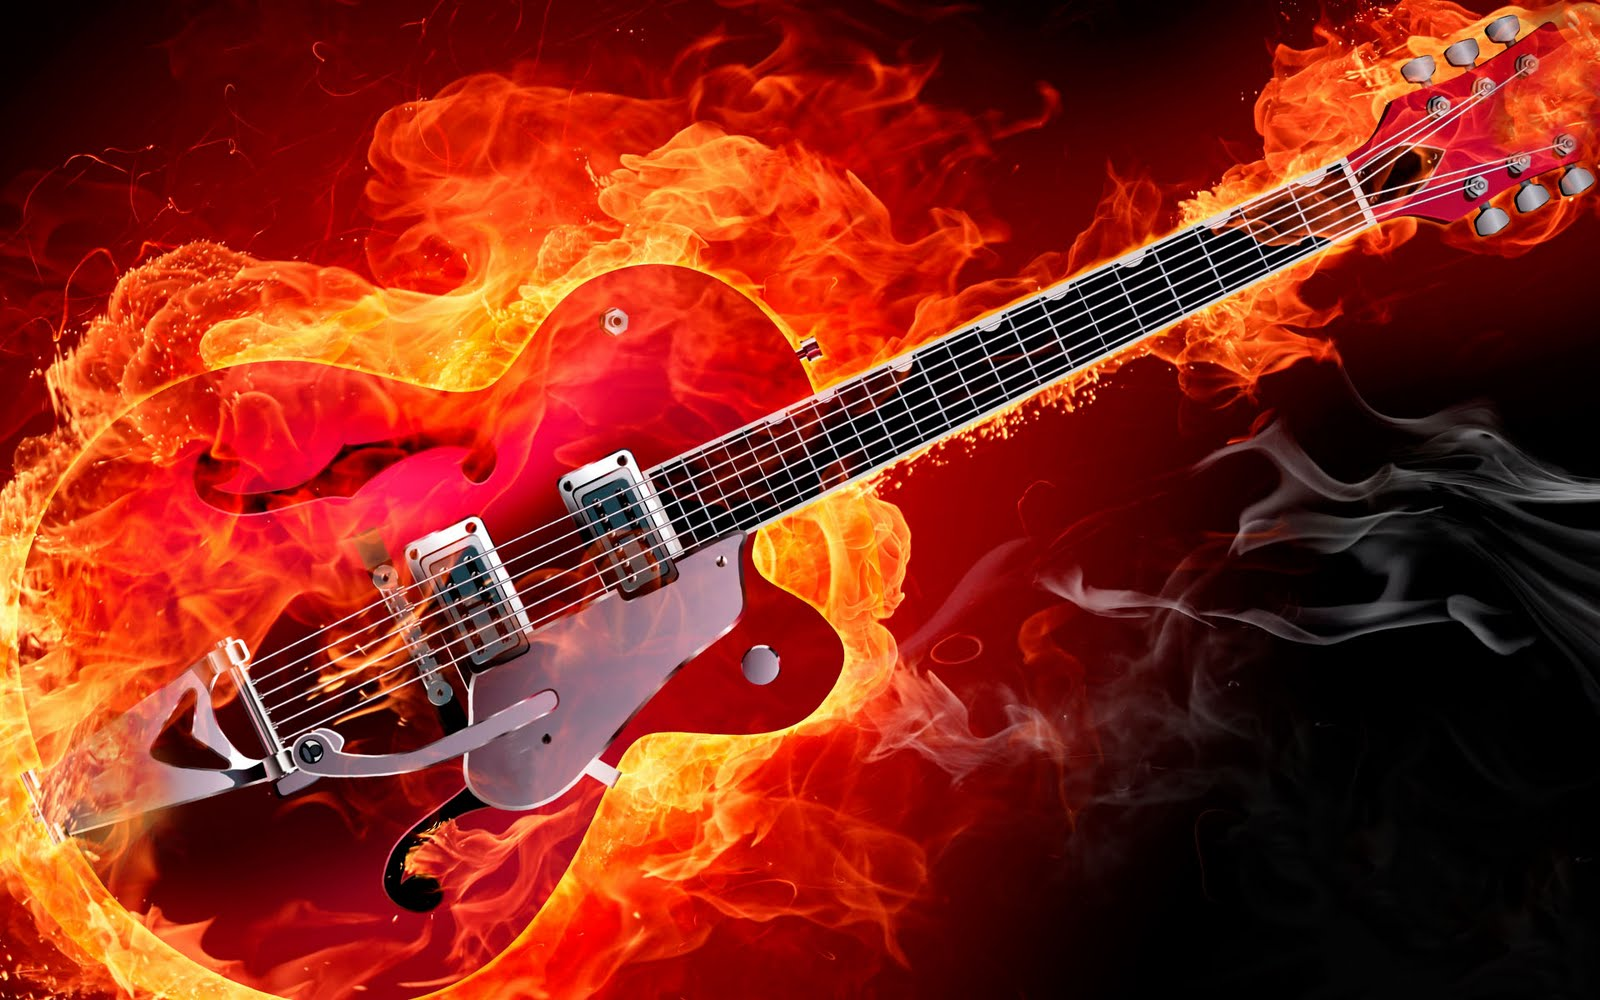 48 Electric Guitar Wallpaper Hd On Wallpapersafari